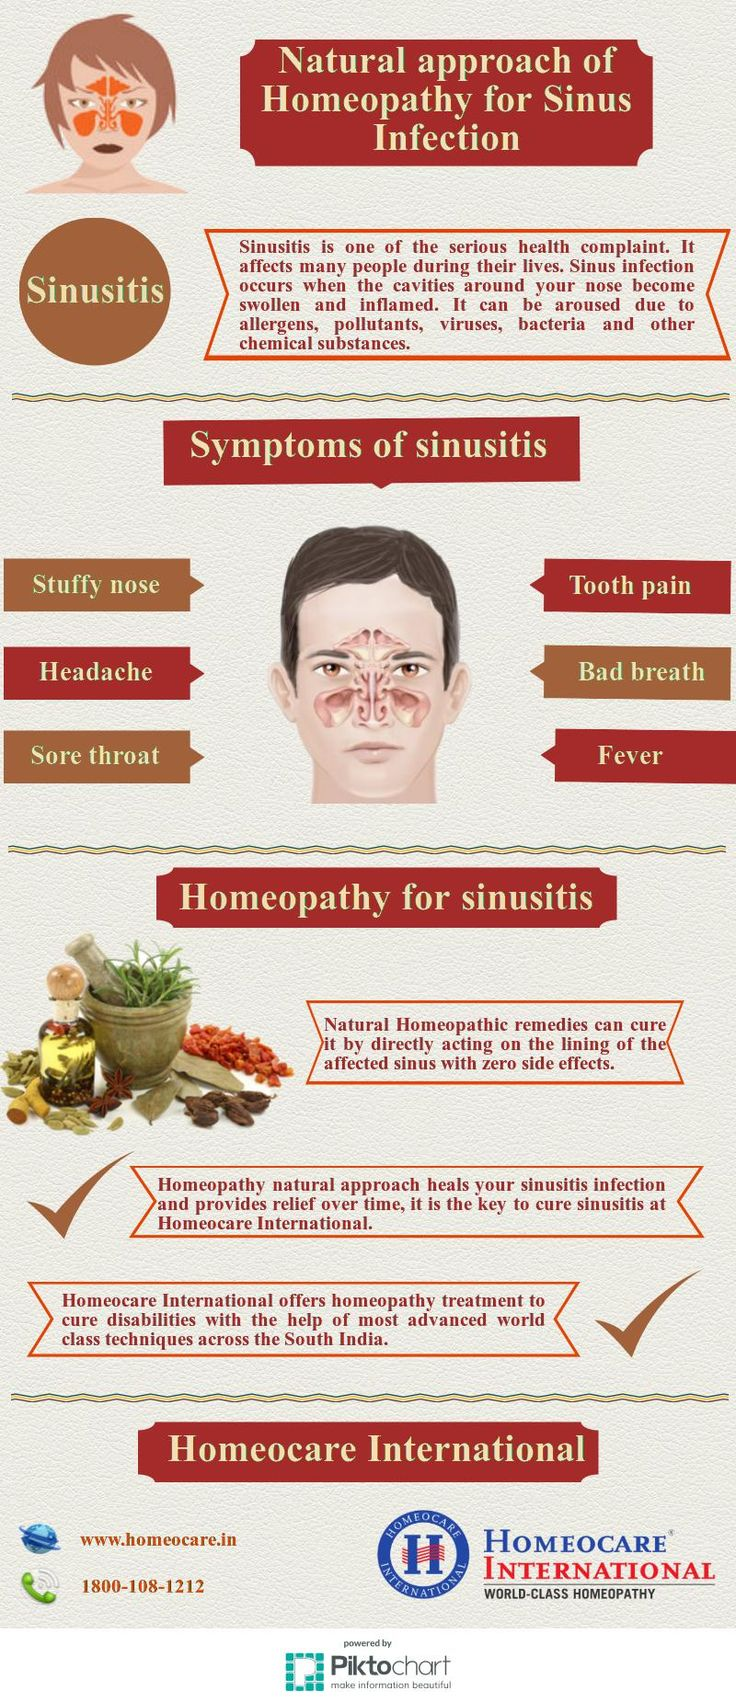 Sinus infection is a very common condition that refers to irritation of the sinuses and nasal passages. It is two types acute and chronic sinusitis. These are occurred due to viruses, allergens, pollutant, bacteria and fungus. Sinus can treated and diagnosed through holistic Homeopathy approach at Homeocare International. Homeopathic remedies clears your sinus infection with zero side effects. So walk into one of your nearest Homeocare International branches and get complete health solution.